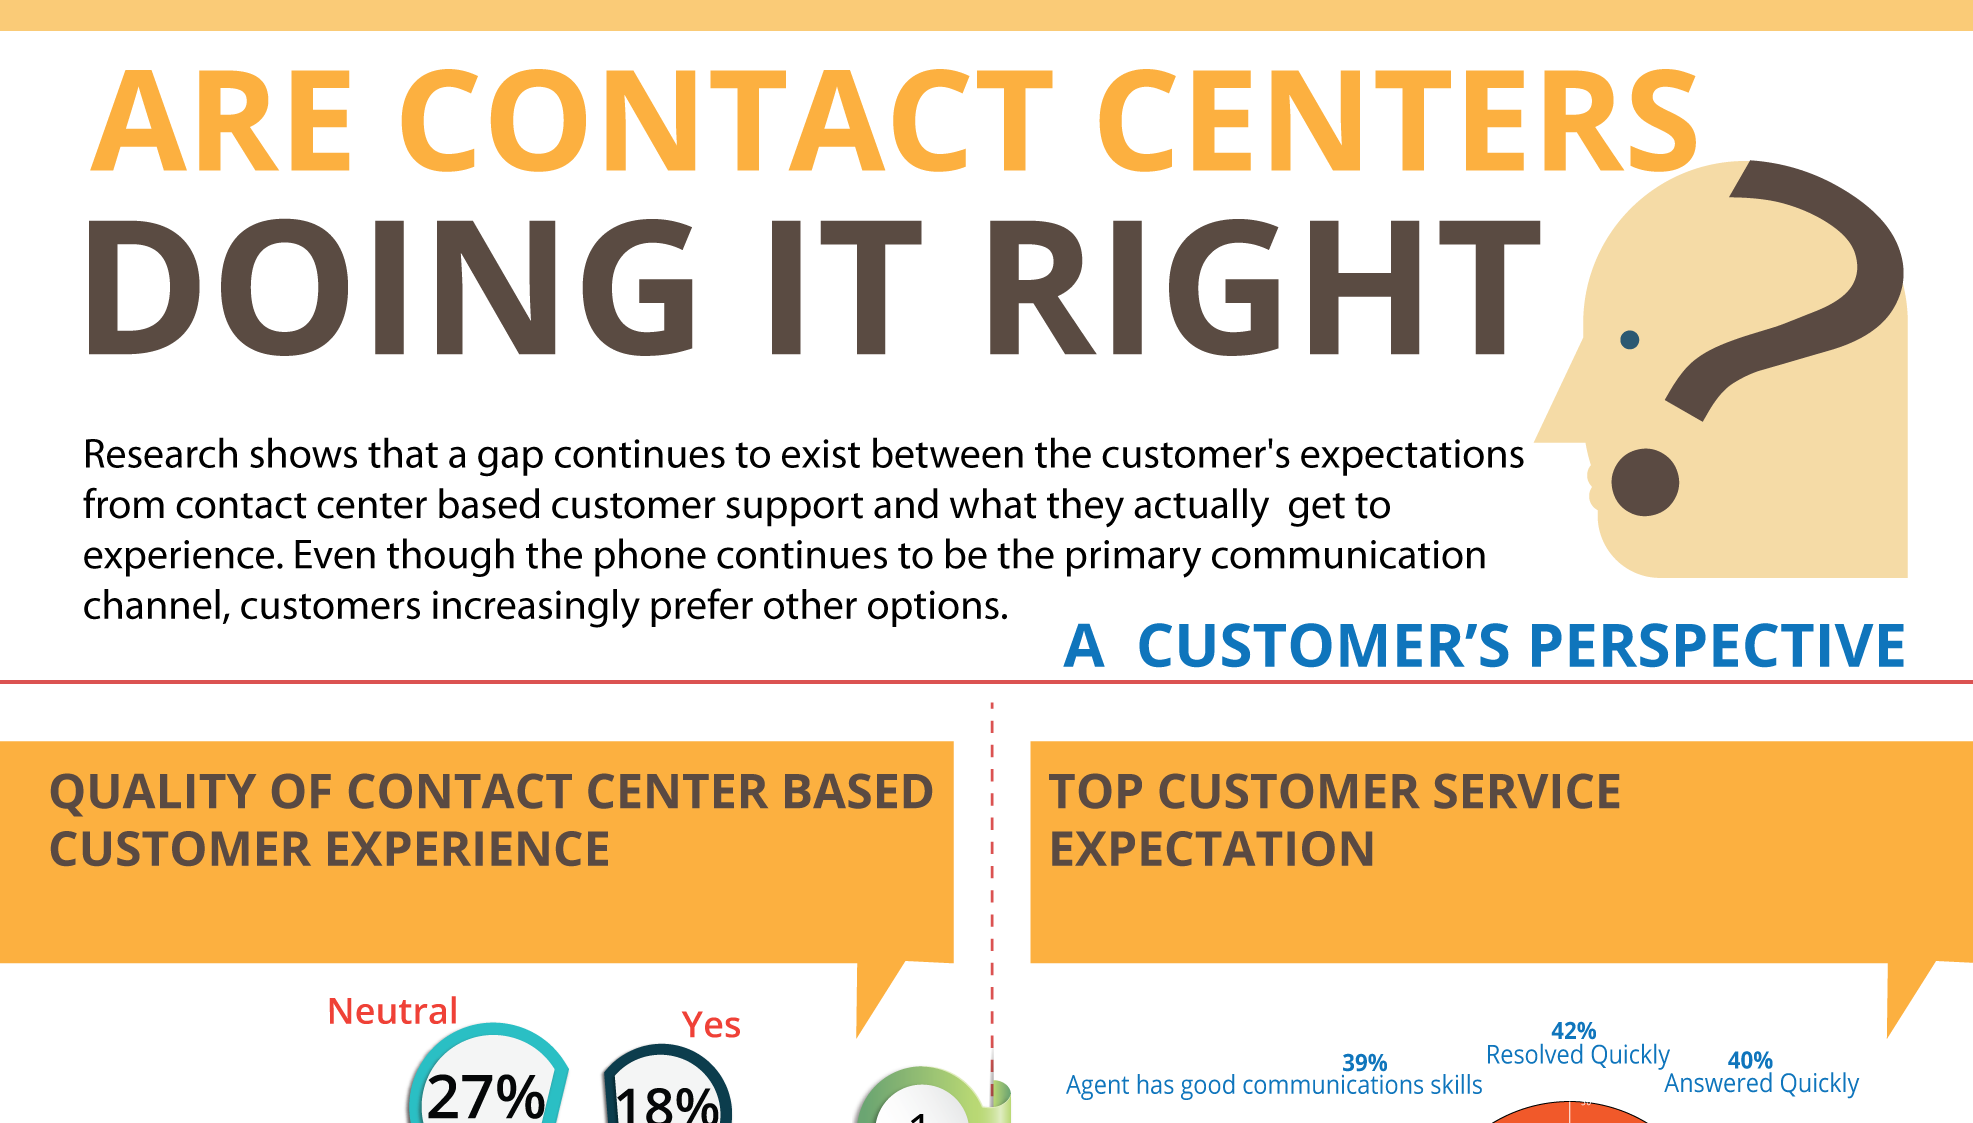 Are contact centers doing it right? – Customers' perspective